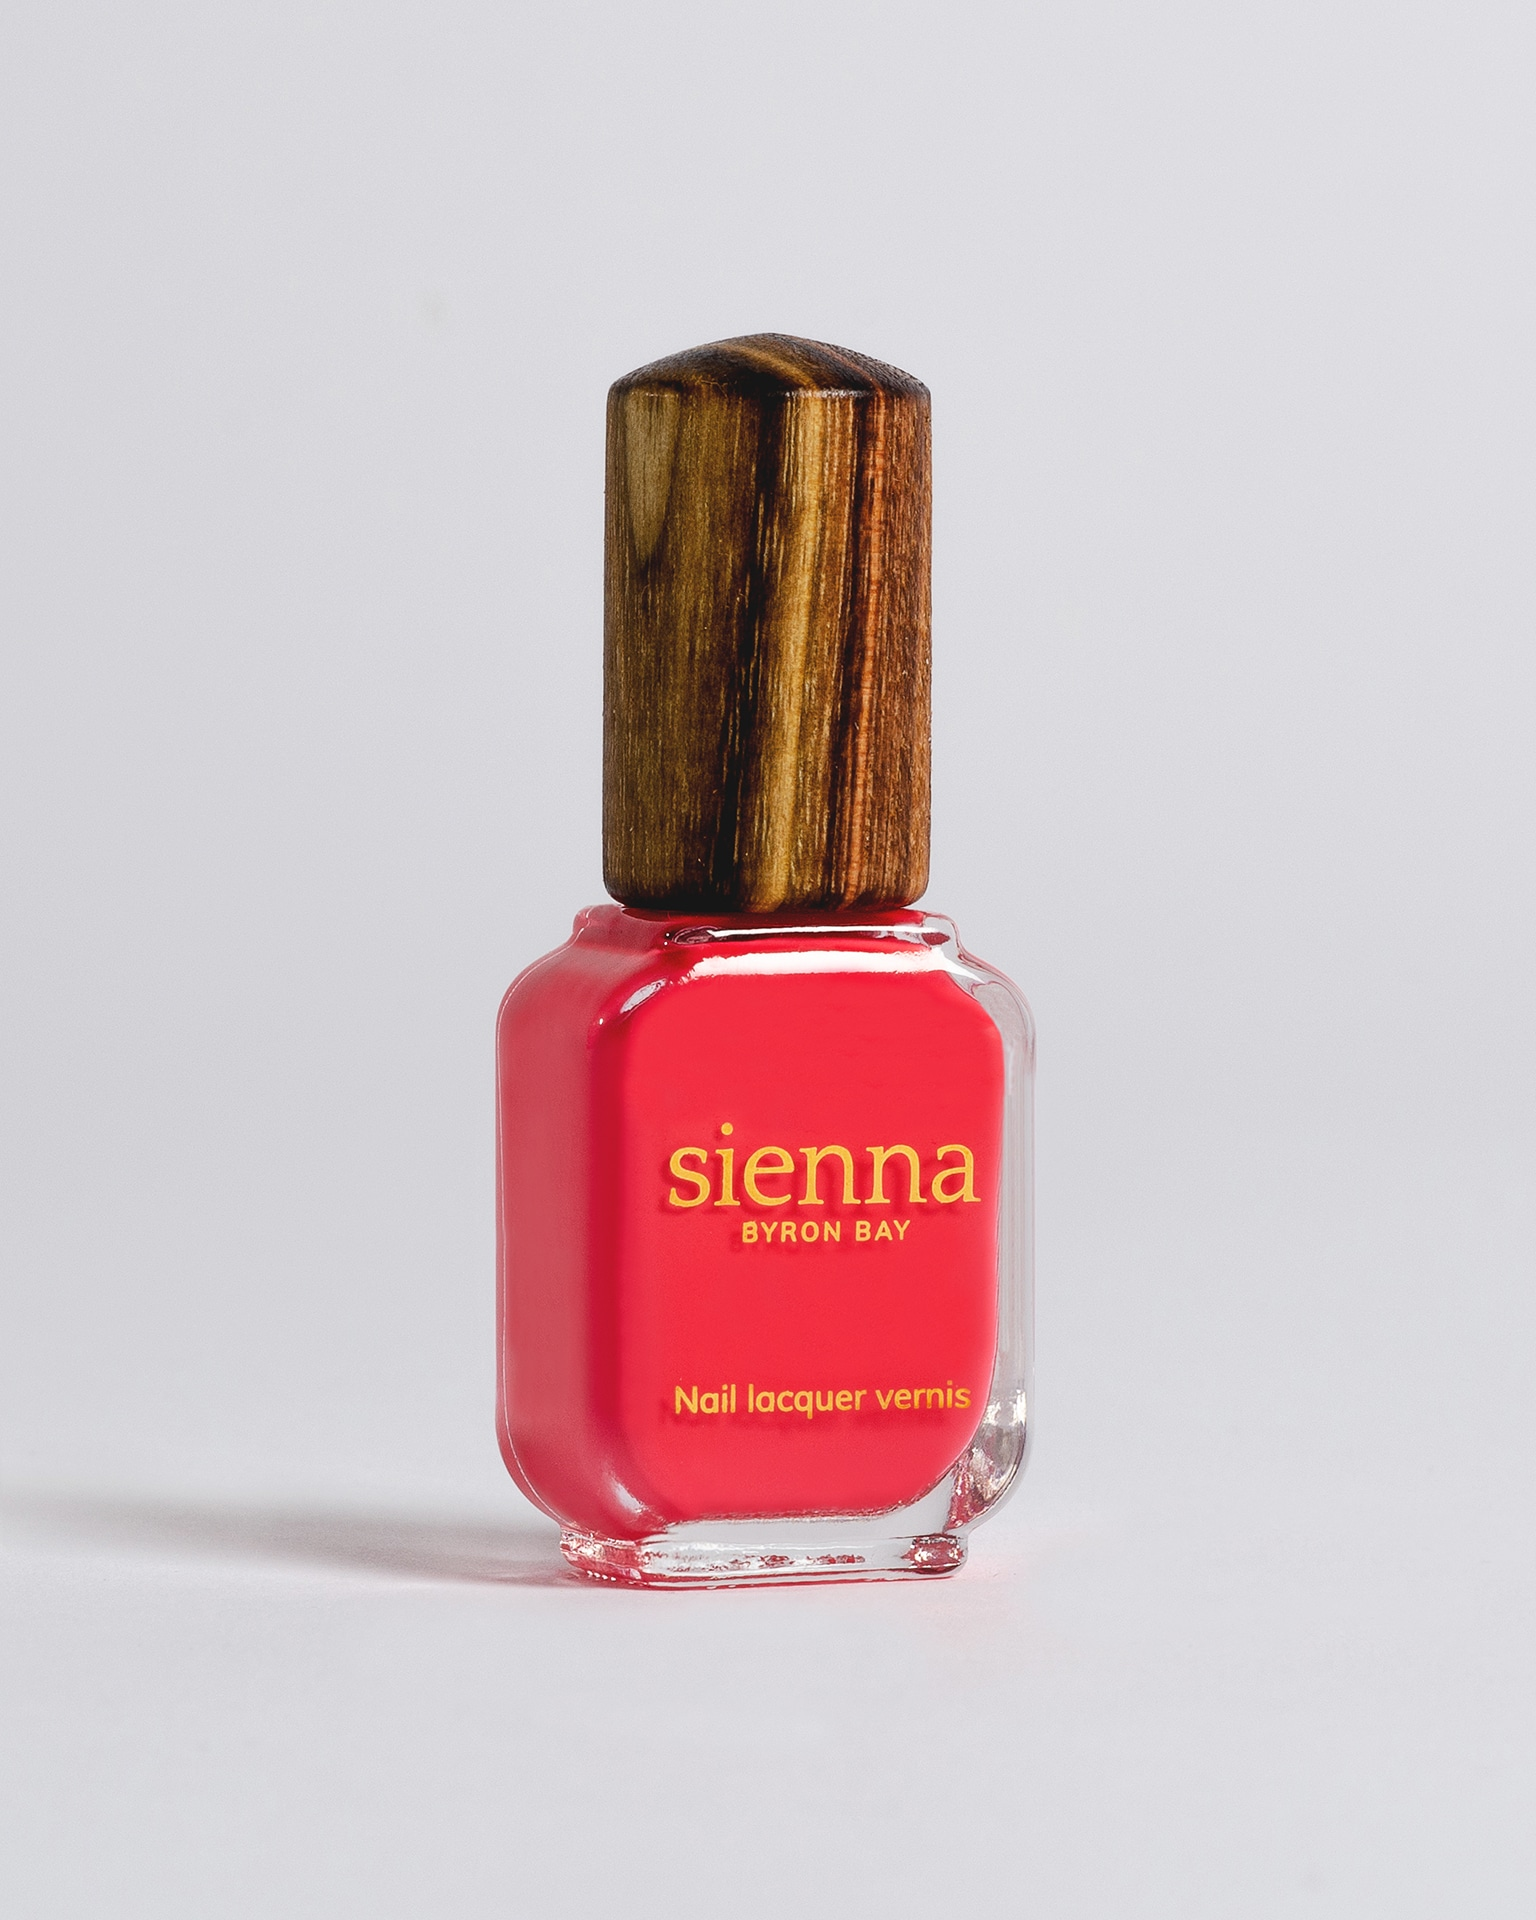 barbie pink nail polish bottle with timber cap by sienna